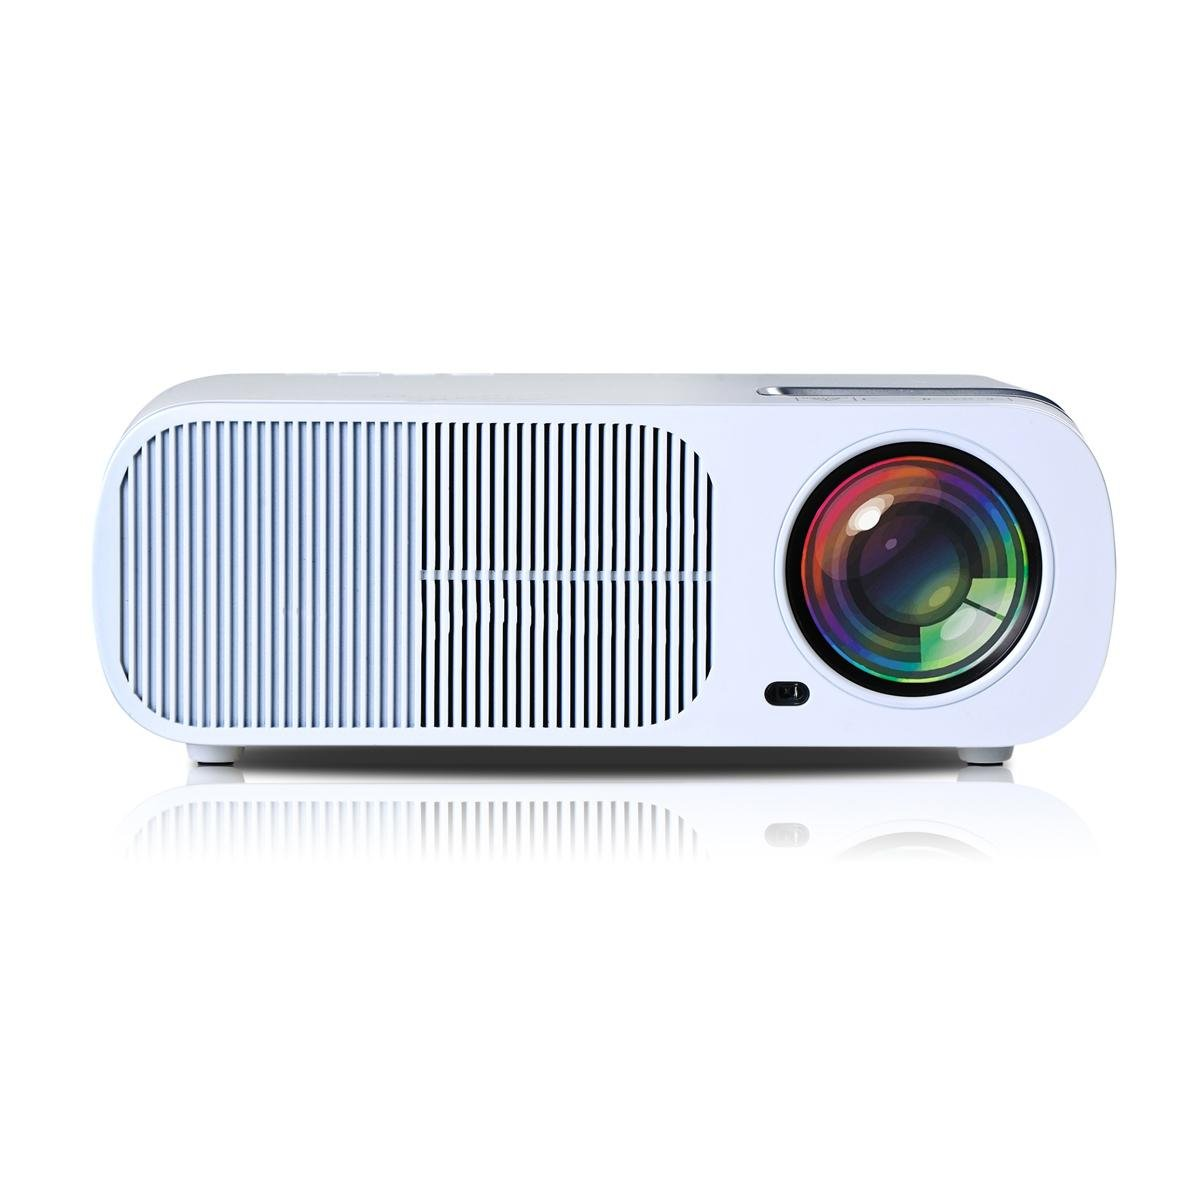 UHAPPY Mini LED Projector 20,000 hours lamp life 1080P 2600 lumen